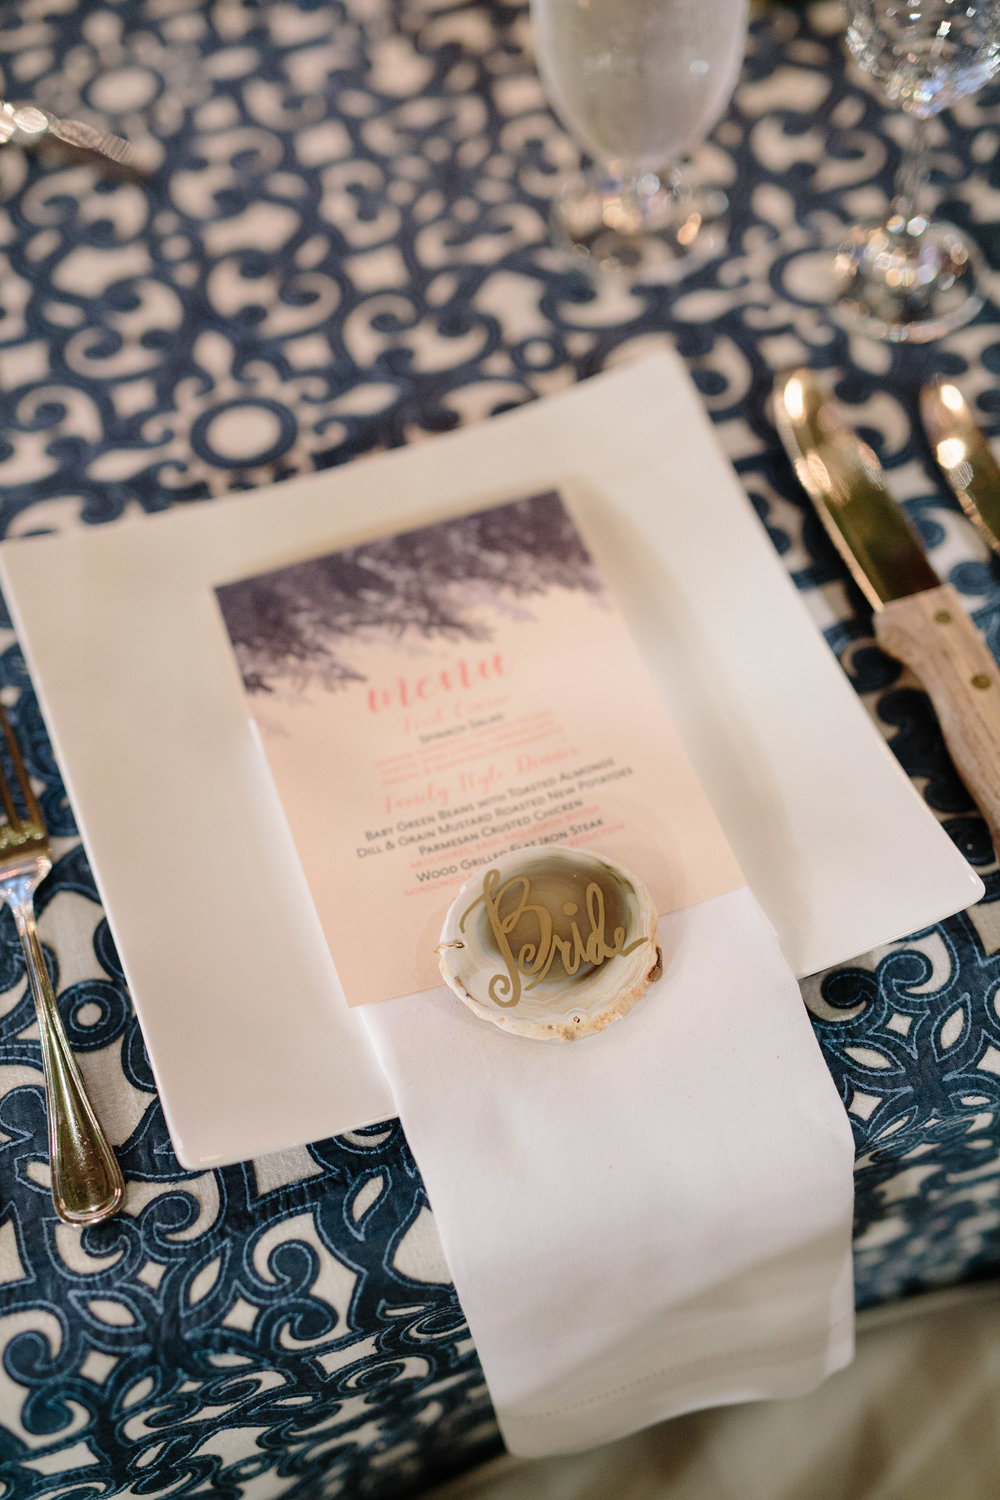 86496-ashevillencmountainweddingreceptionmenuplacesettingashevillencmountainweddingreceptionmenuplacesetting.jpg